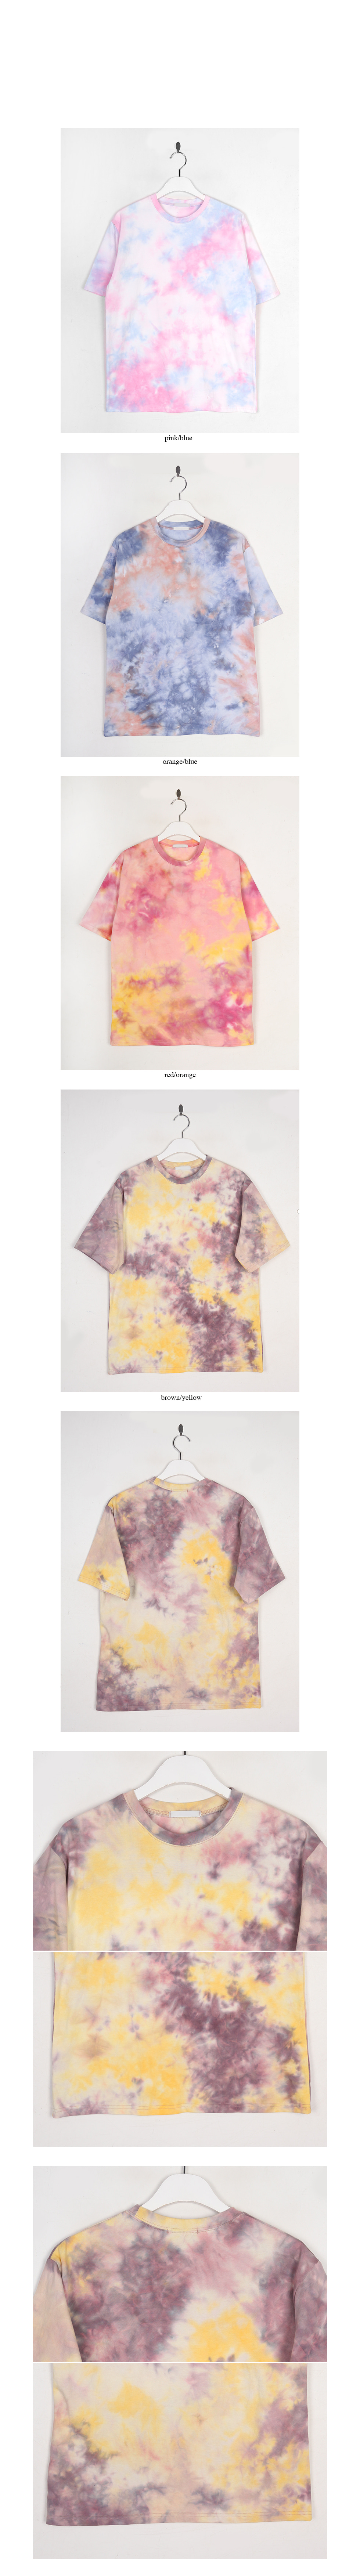 vivid color dyeing tee